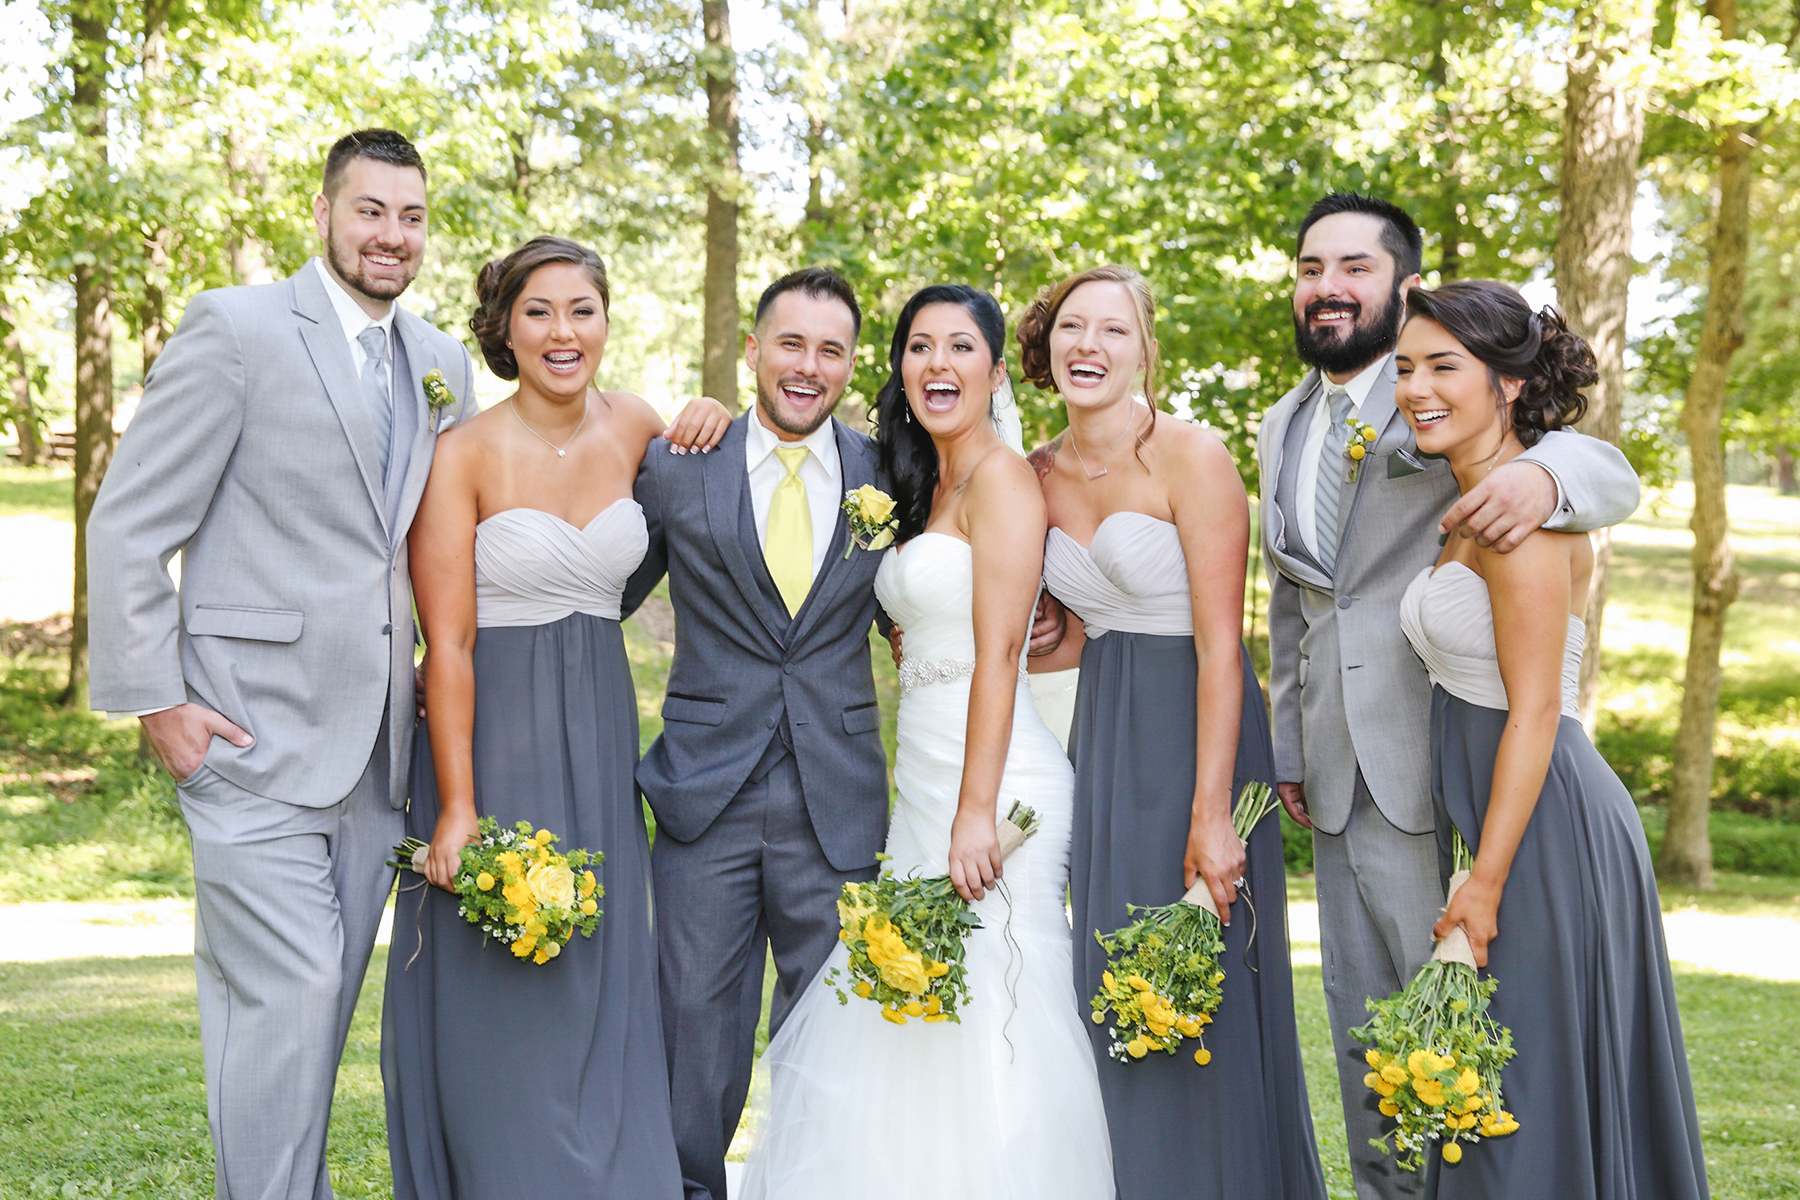 Bauerhaus bridal party